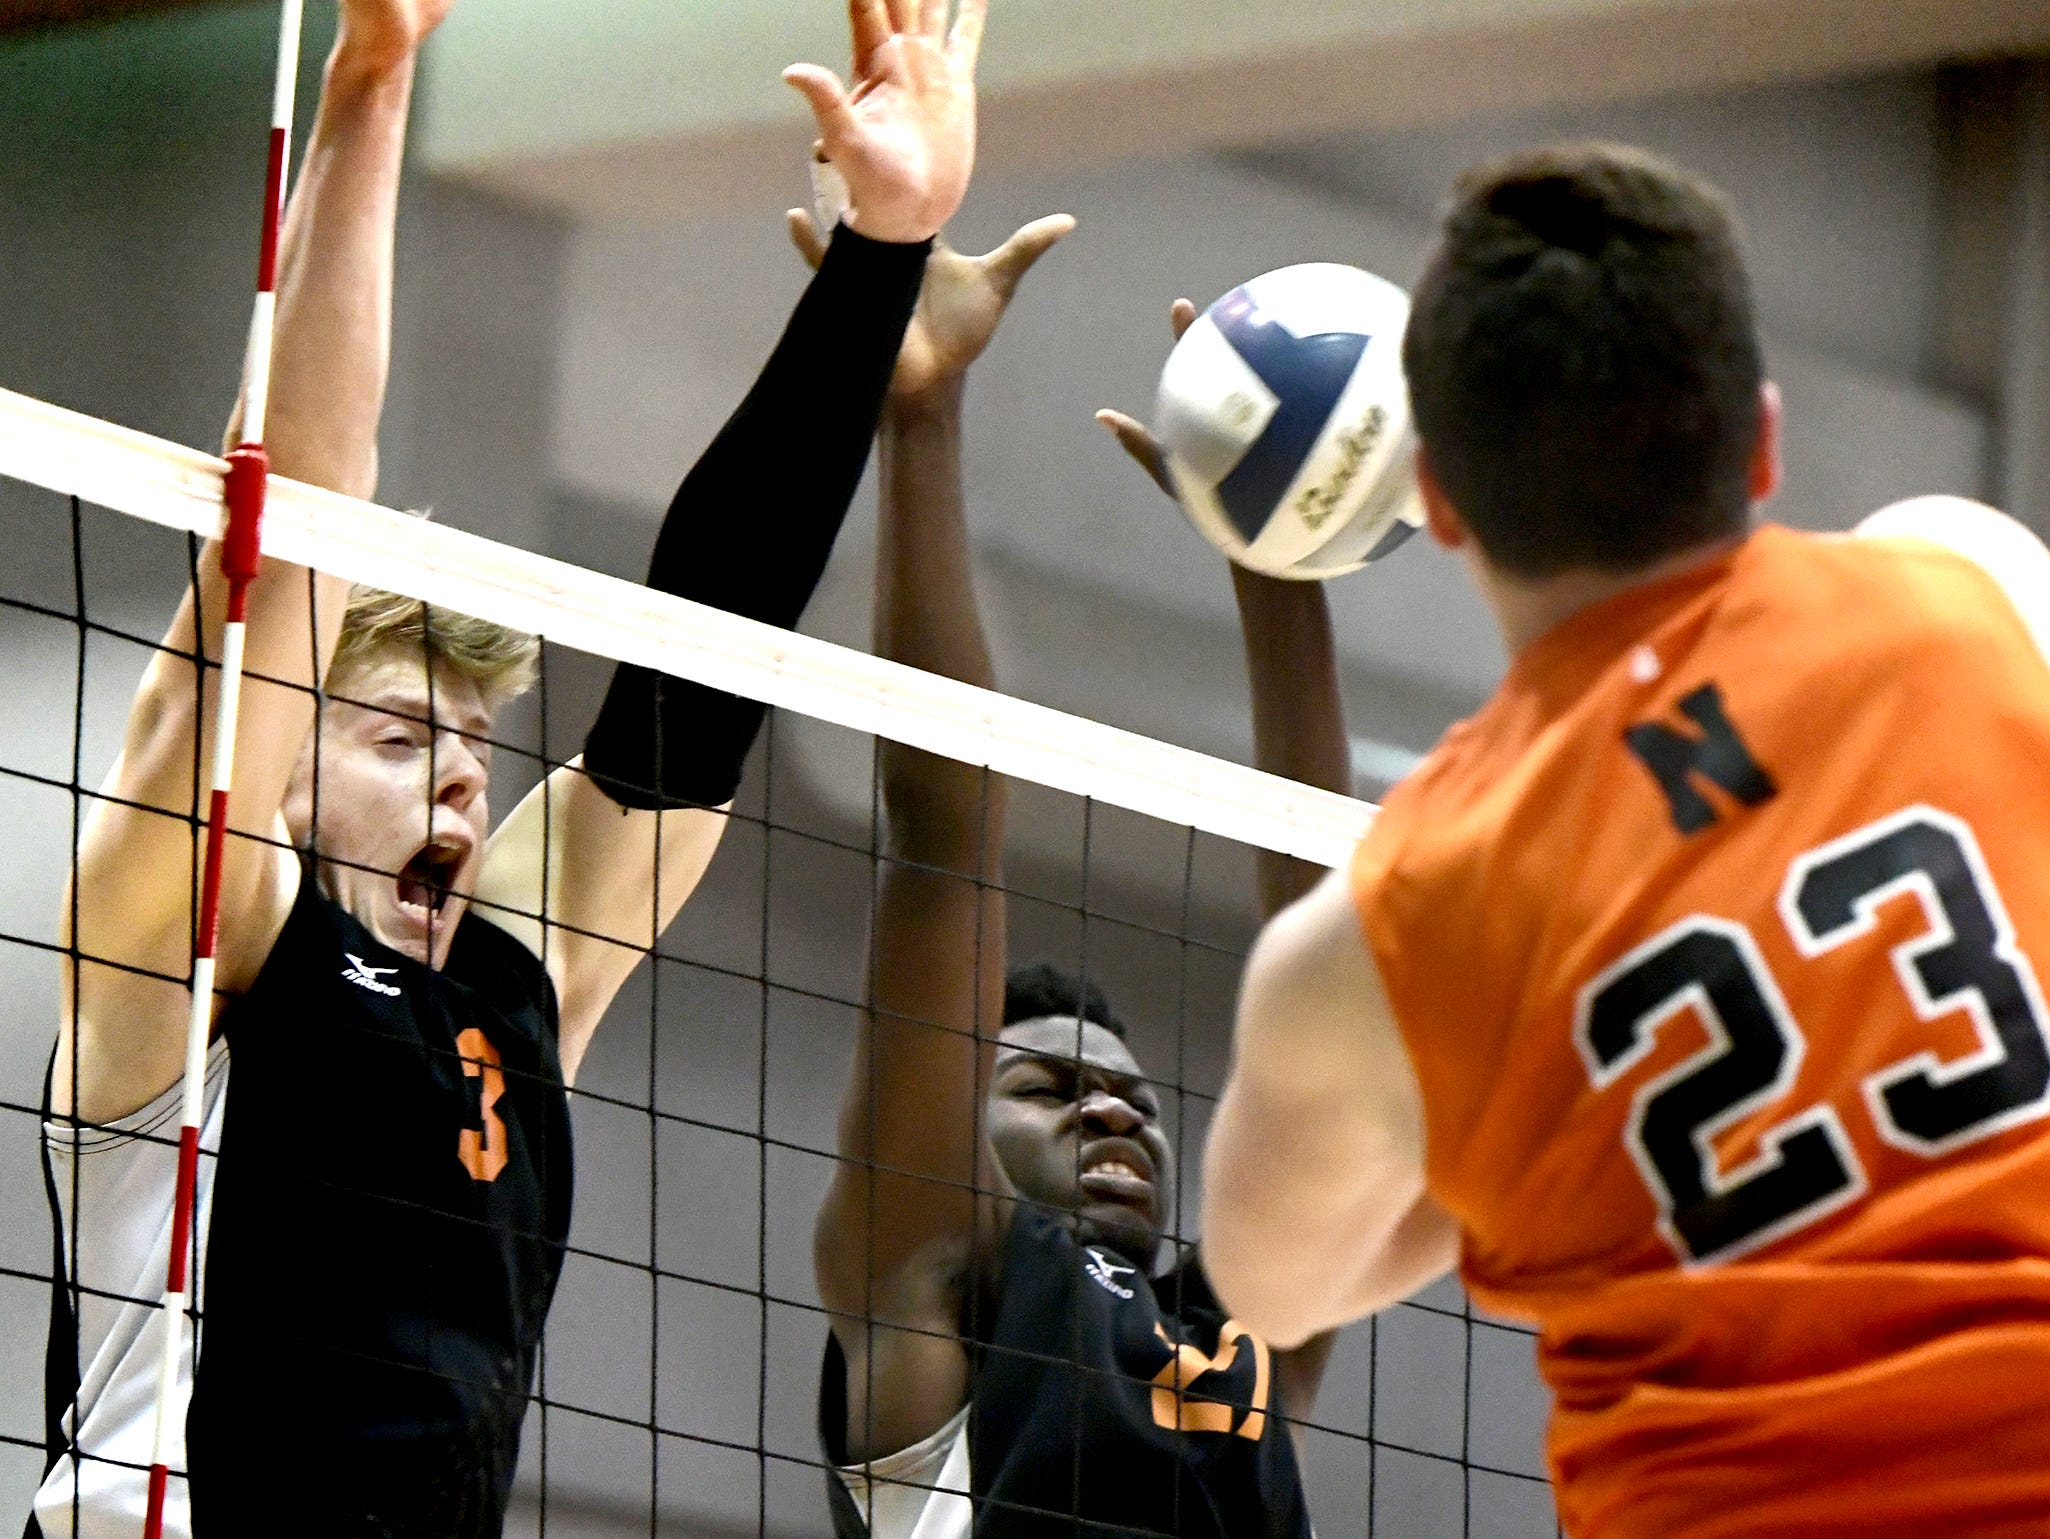 Central York's Kyle Mehl, left, and Prince Gabriel attempt to block a shot by Northeastern's Kyle Williams in the York-Adams boys' volleyball championship match at Dallastown Tuesday, May 14, 2019. Bill Kalina photo